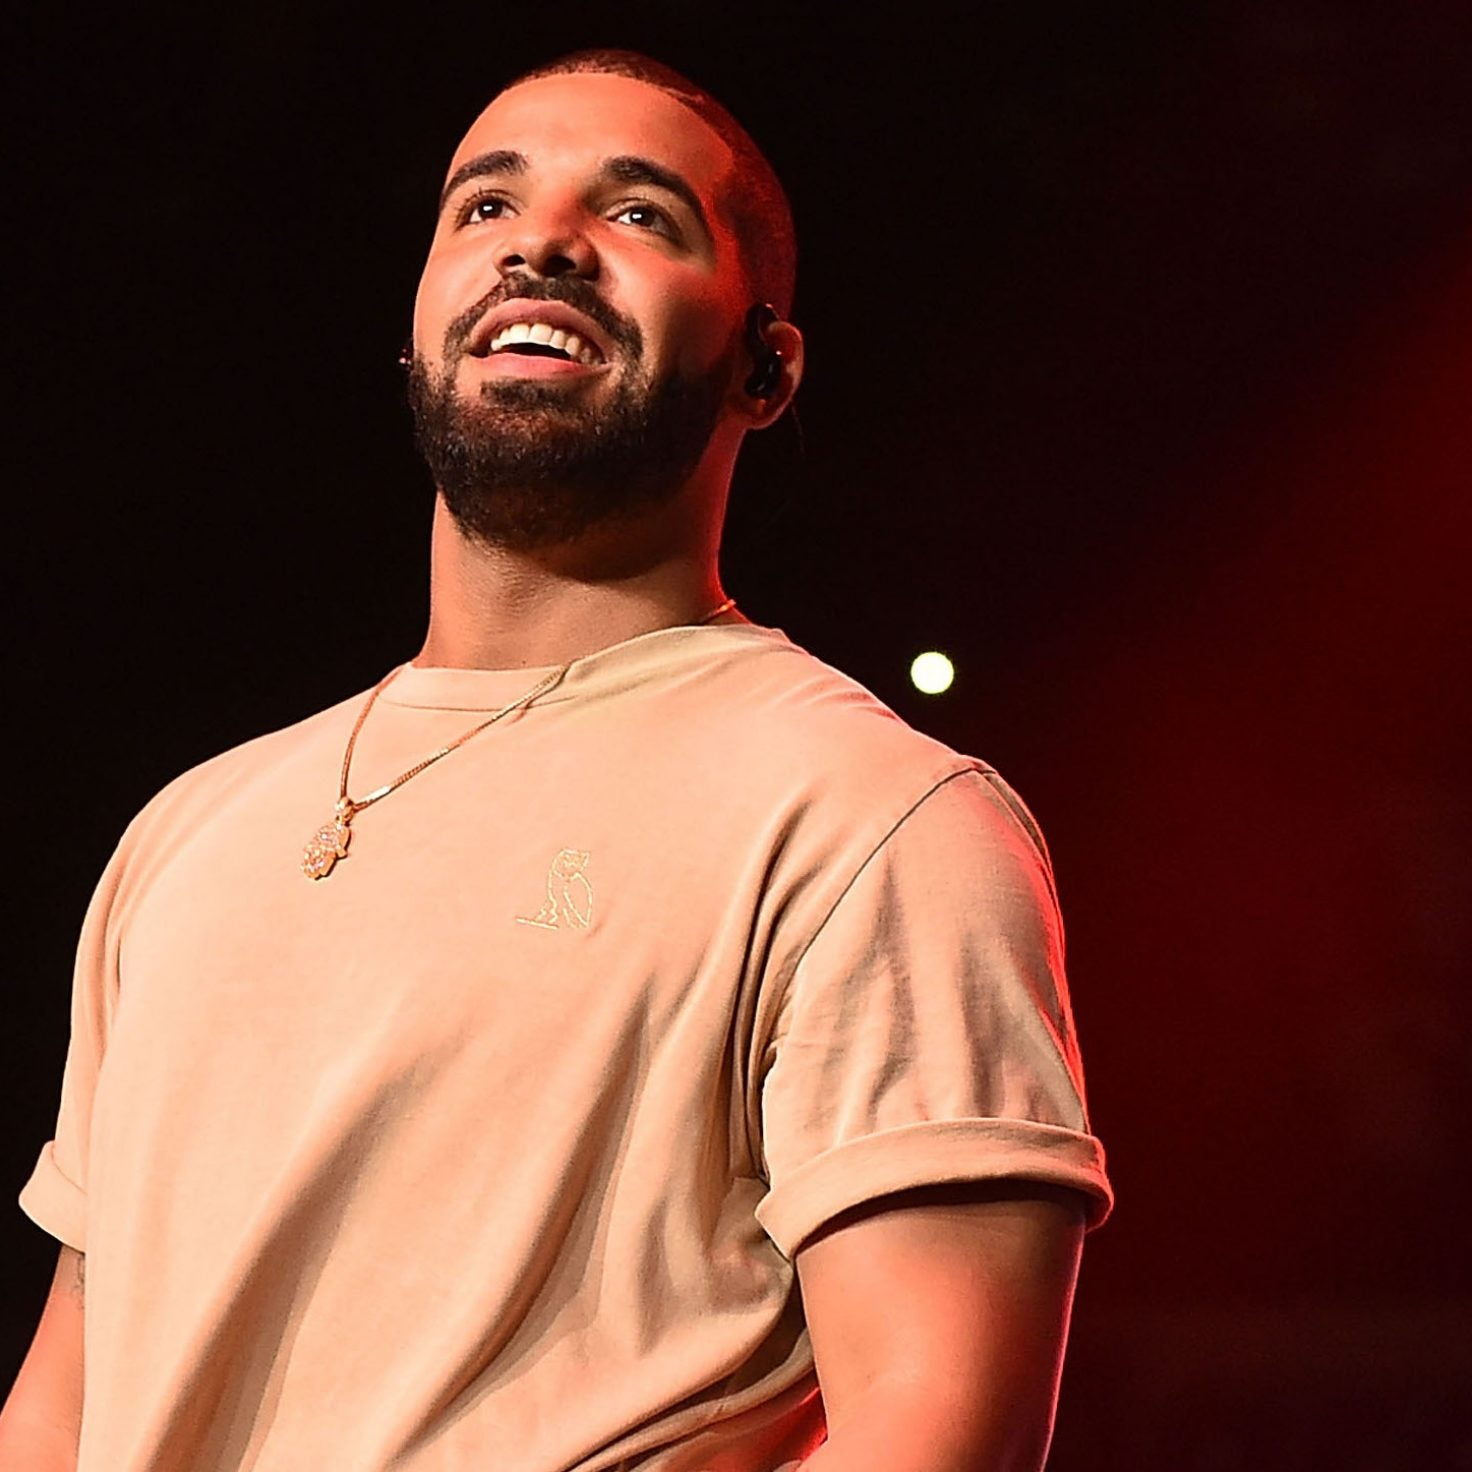 Drake Shares The First Photo Of His Son Adonis And Melts Hearts Everywhere